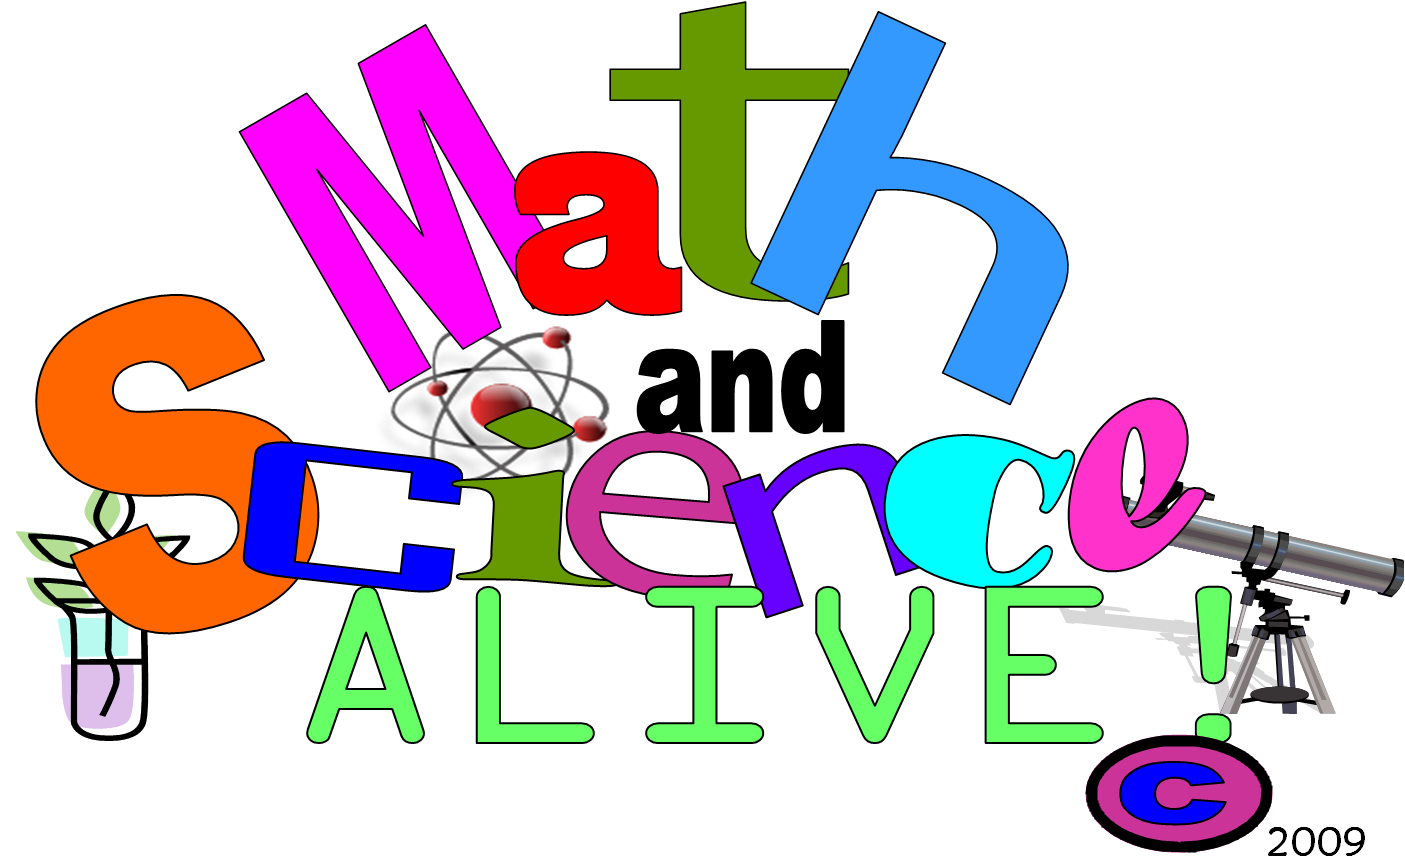 Have Fun With Maths And Science